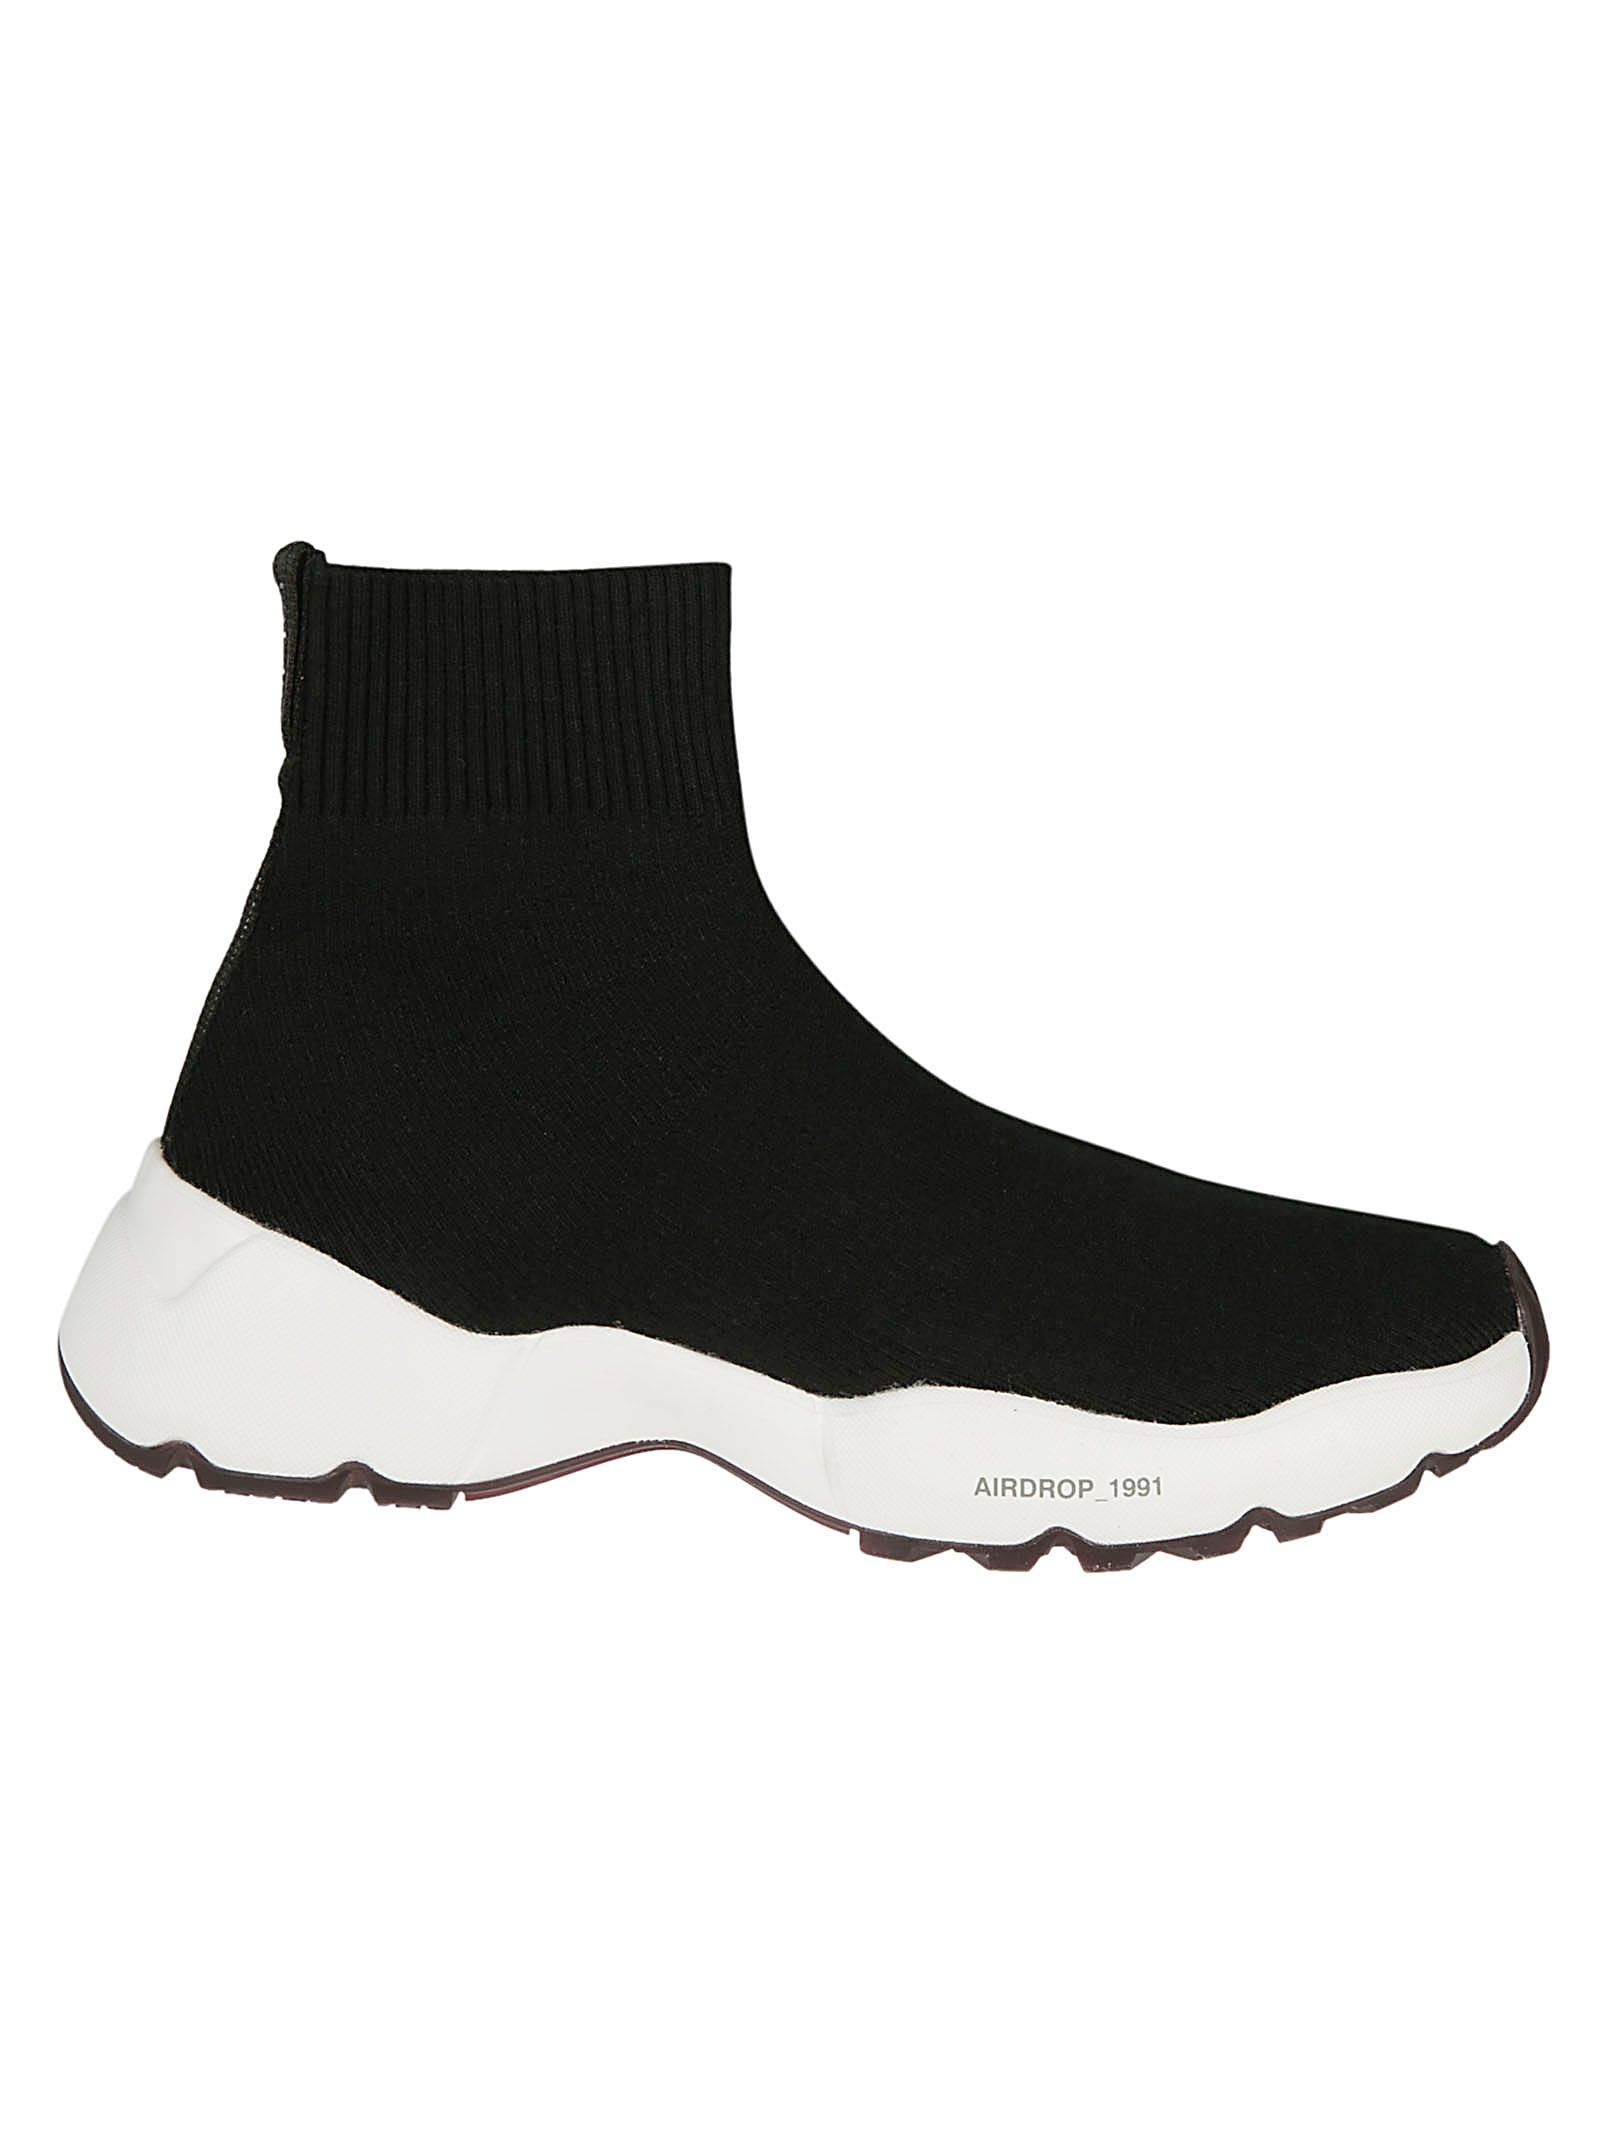 OXS Oxs Airdrop Sock Sneakers in Nero